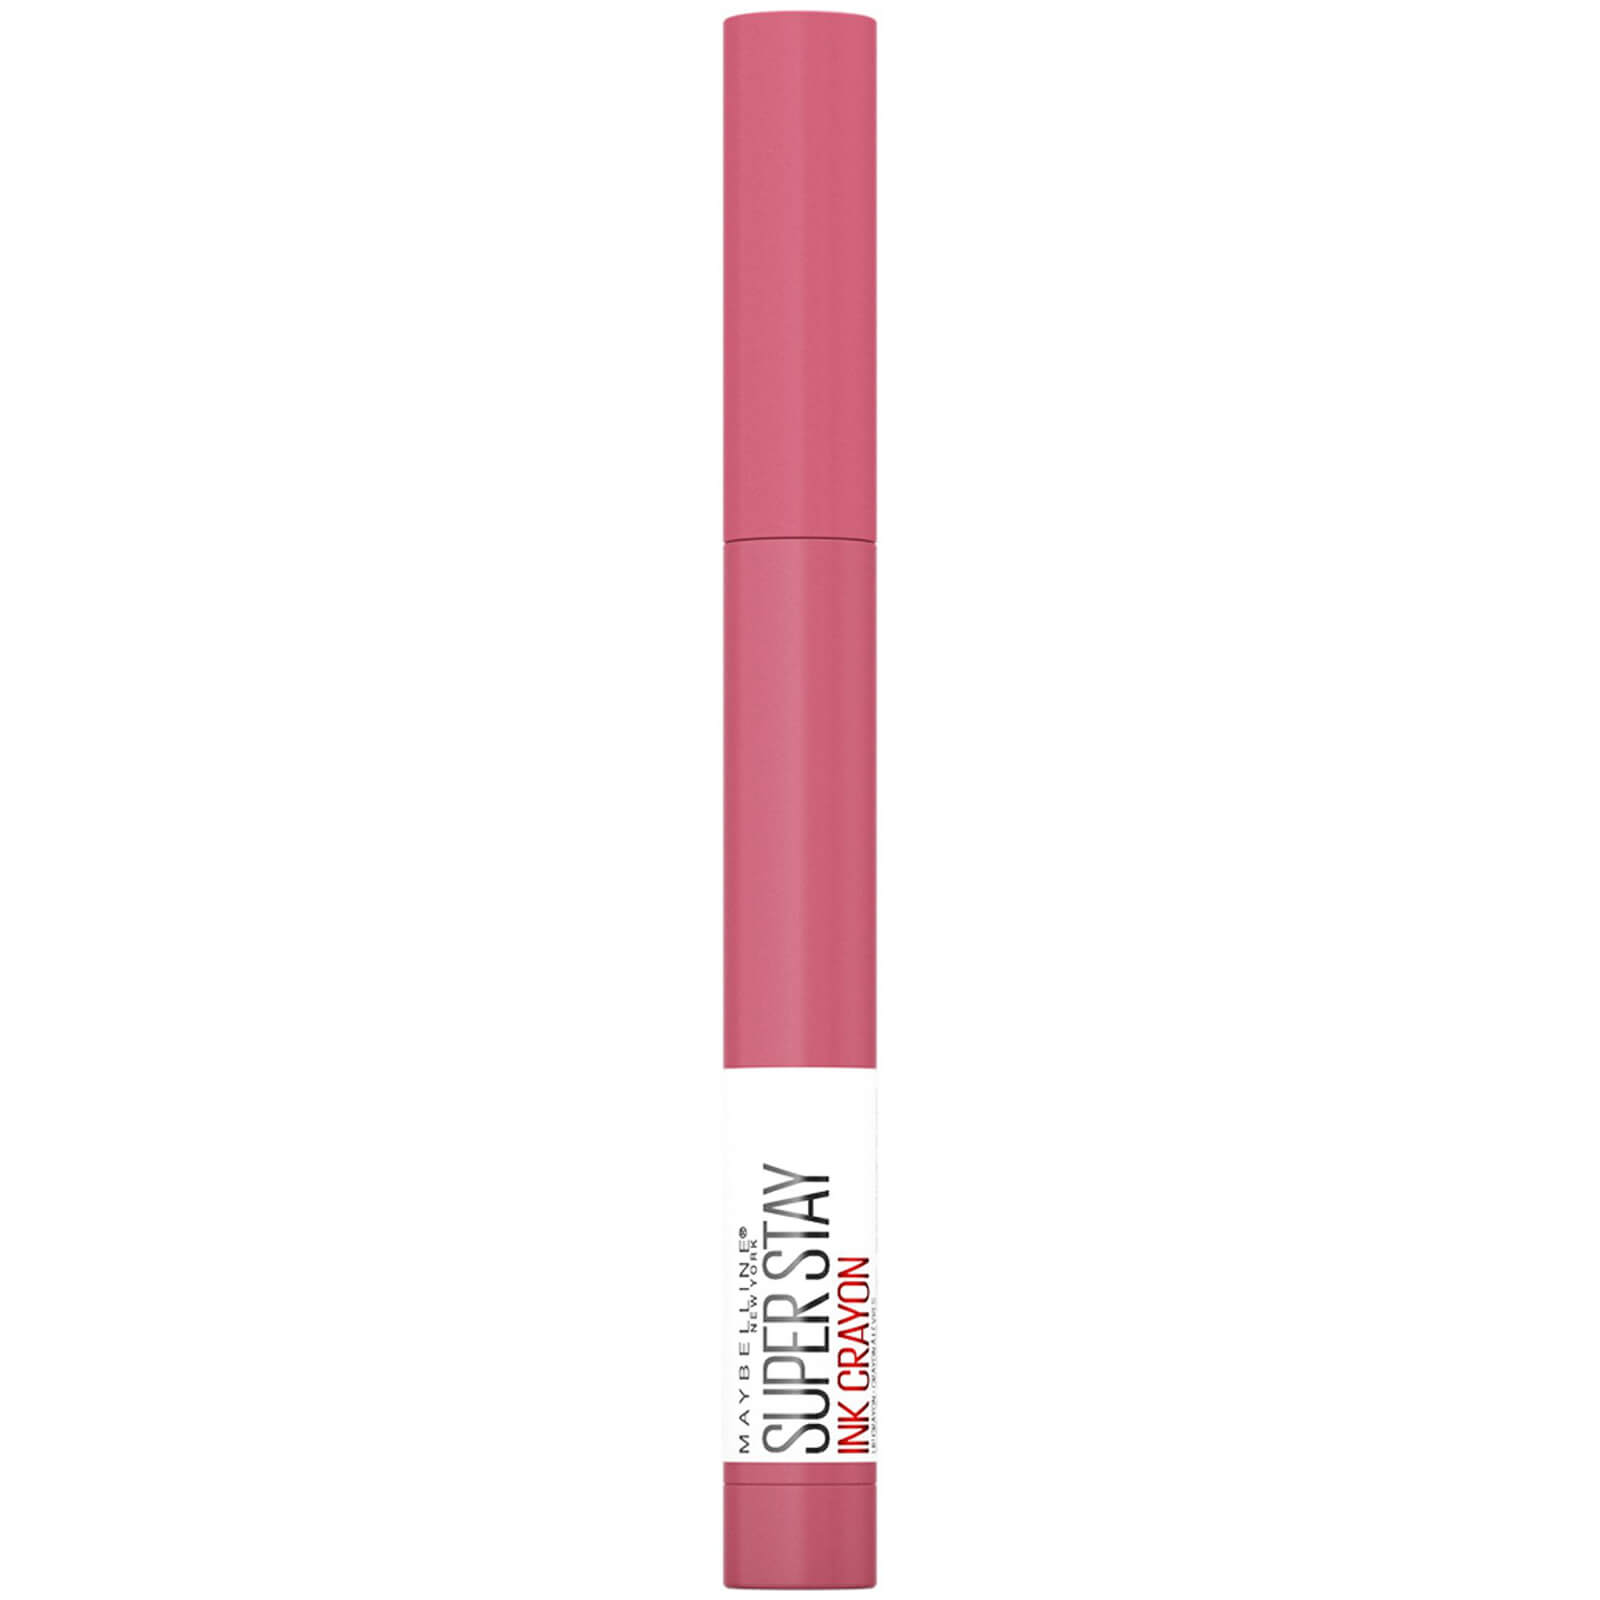 Купить Maybelline Superstay Matte Ink Crayon with Precision Applicator (Various Shades) - 90 Keep it Fun